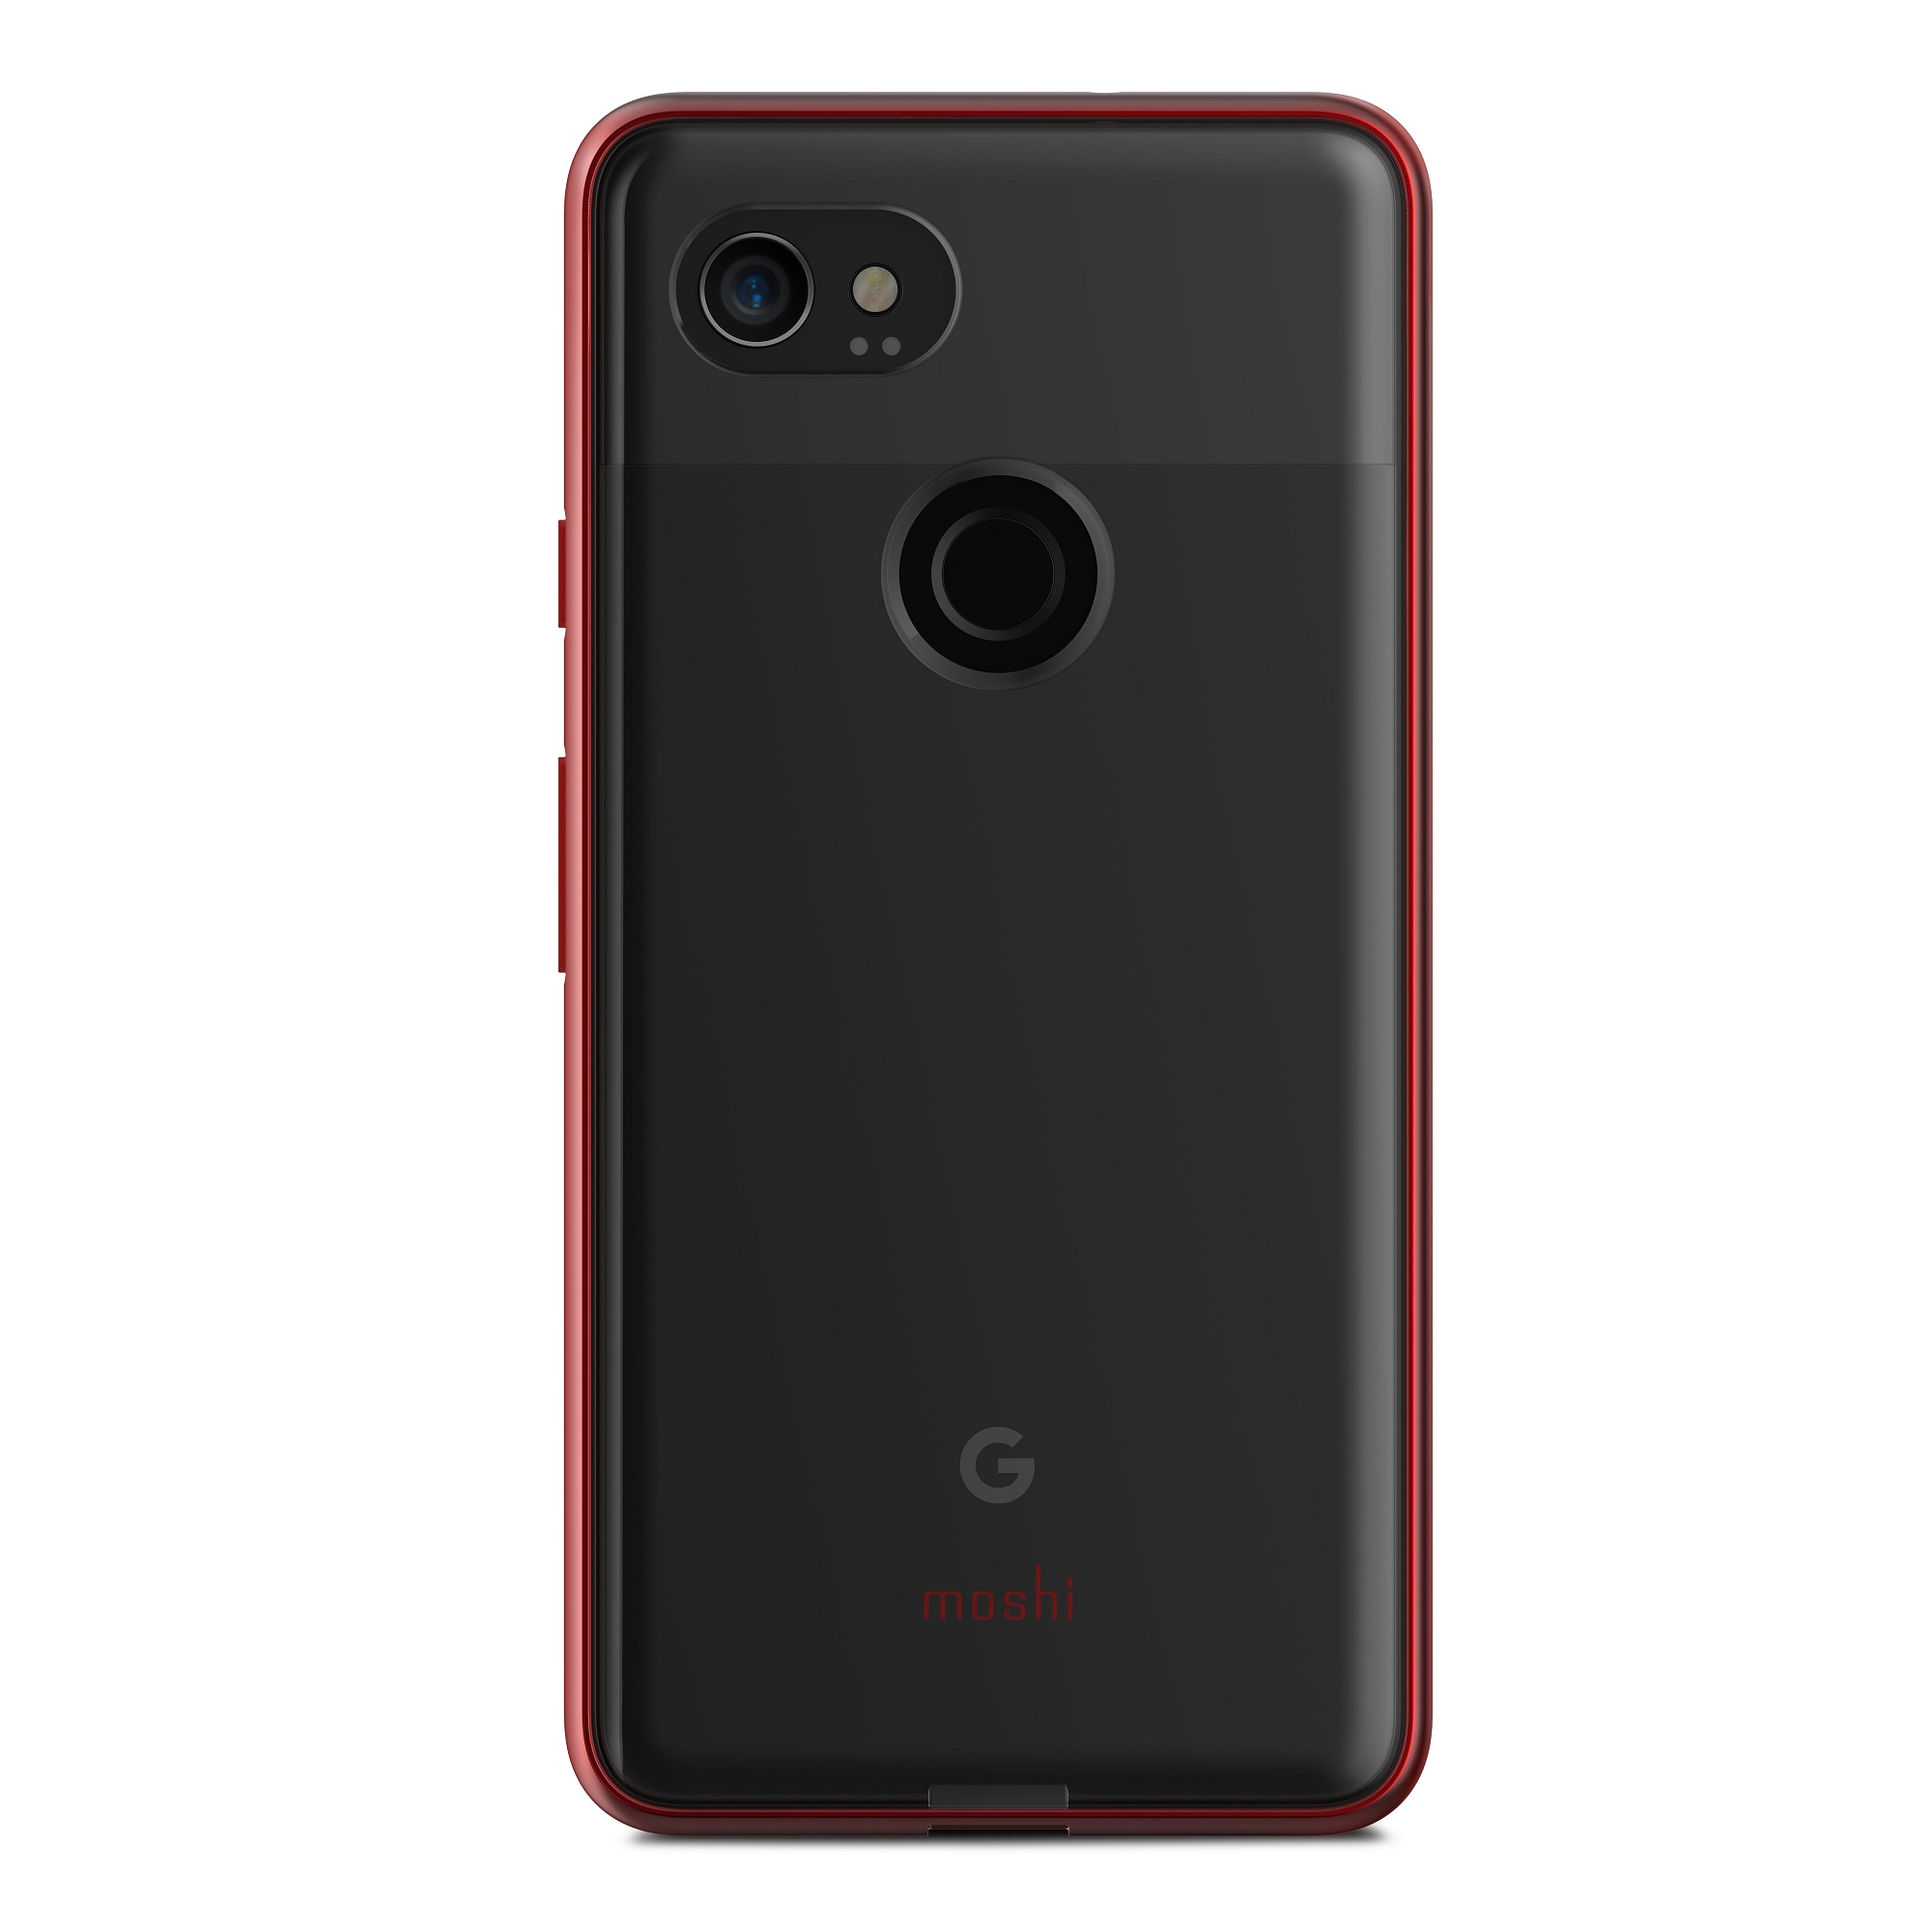 Moshi Vitros Case for Google Pixel 2 XL